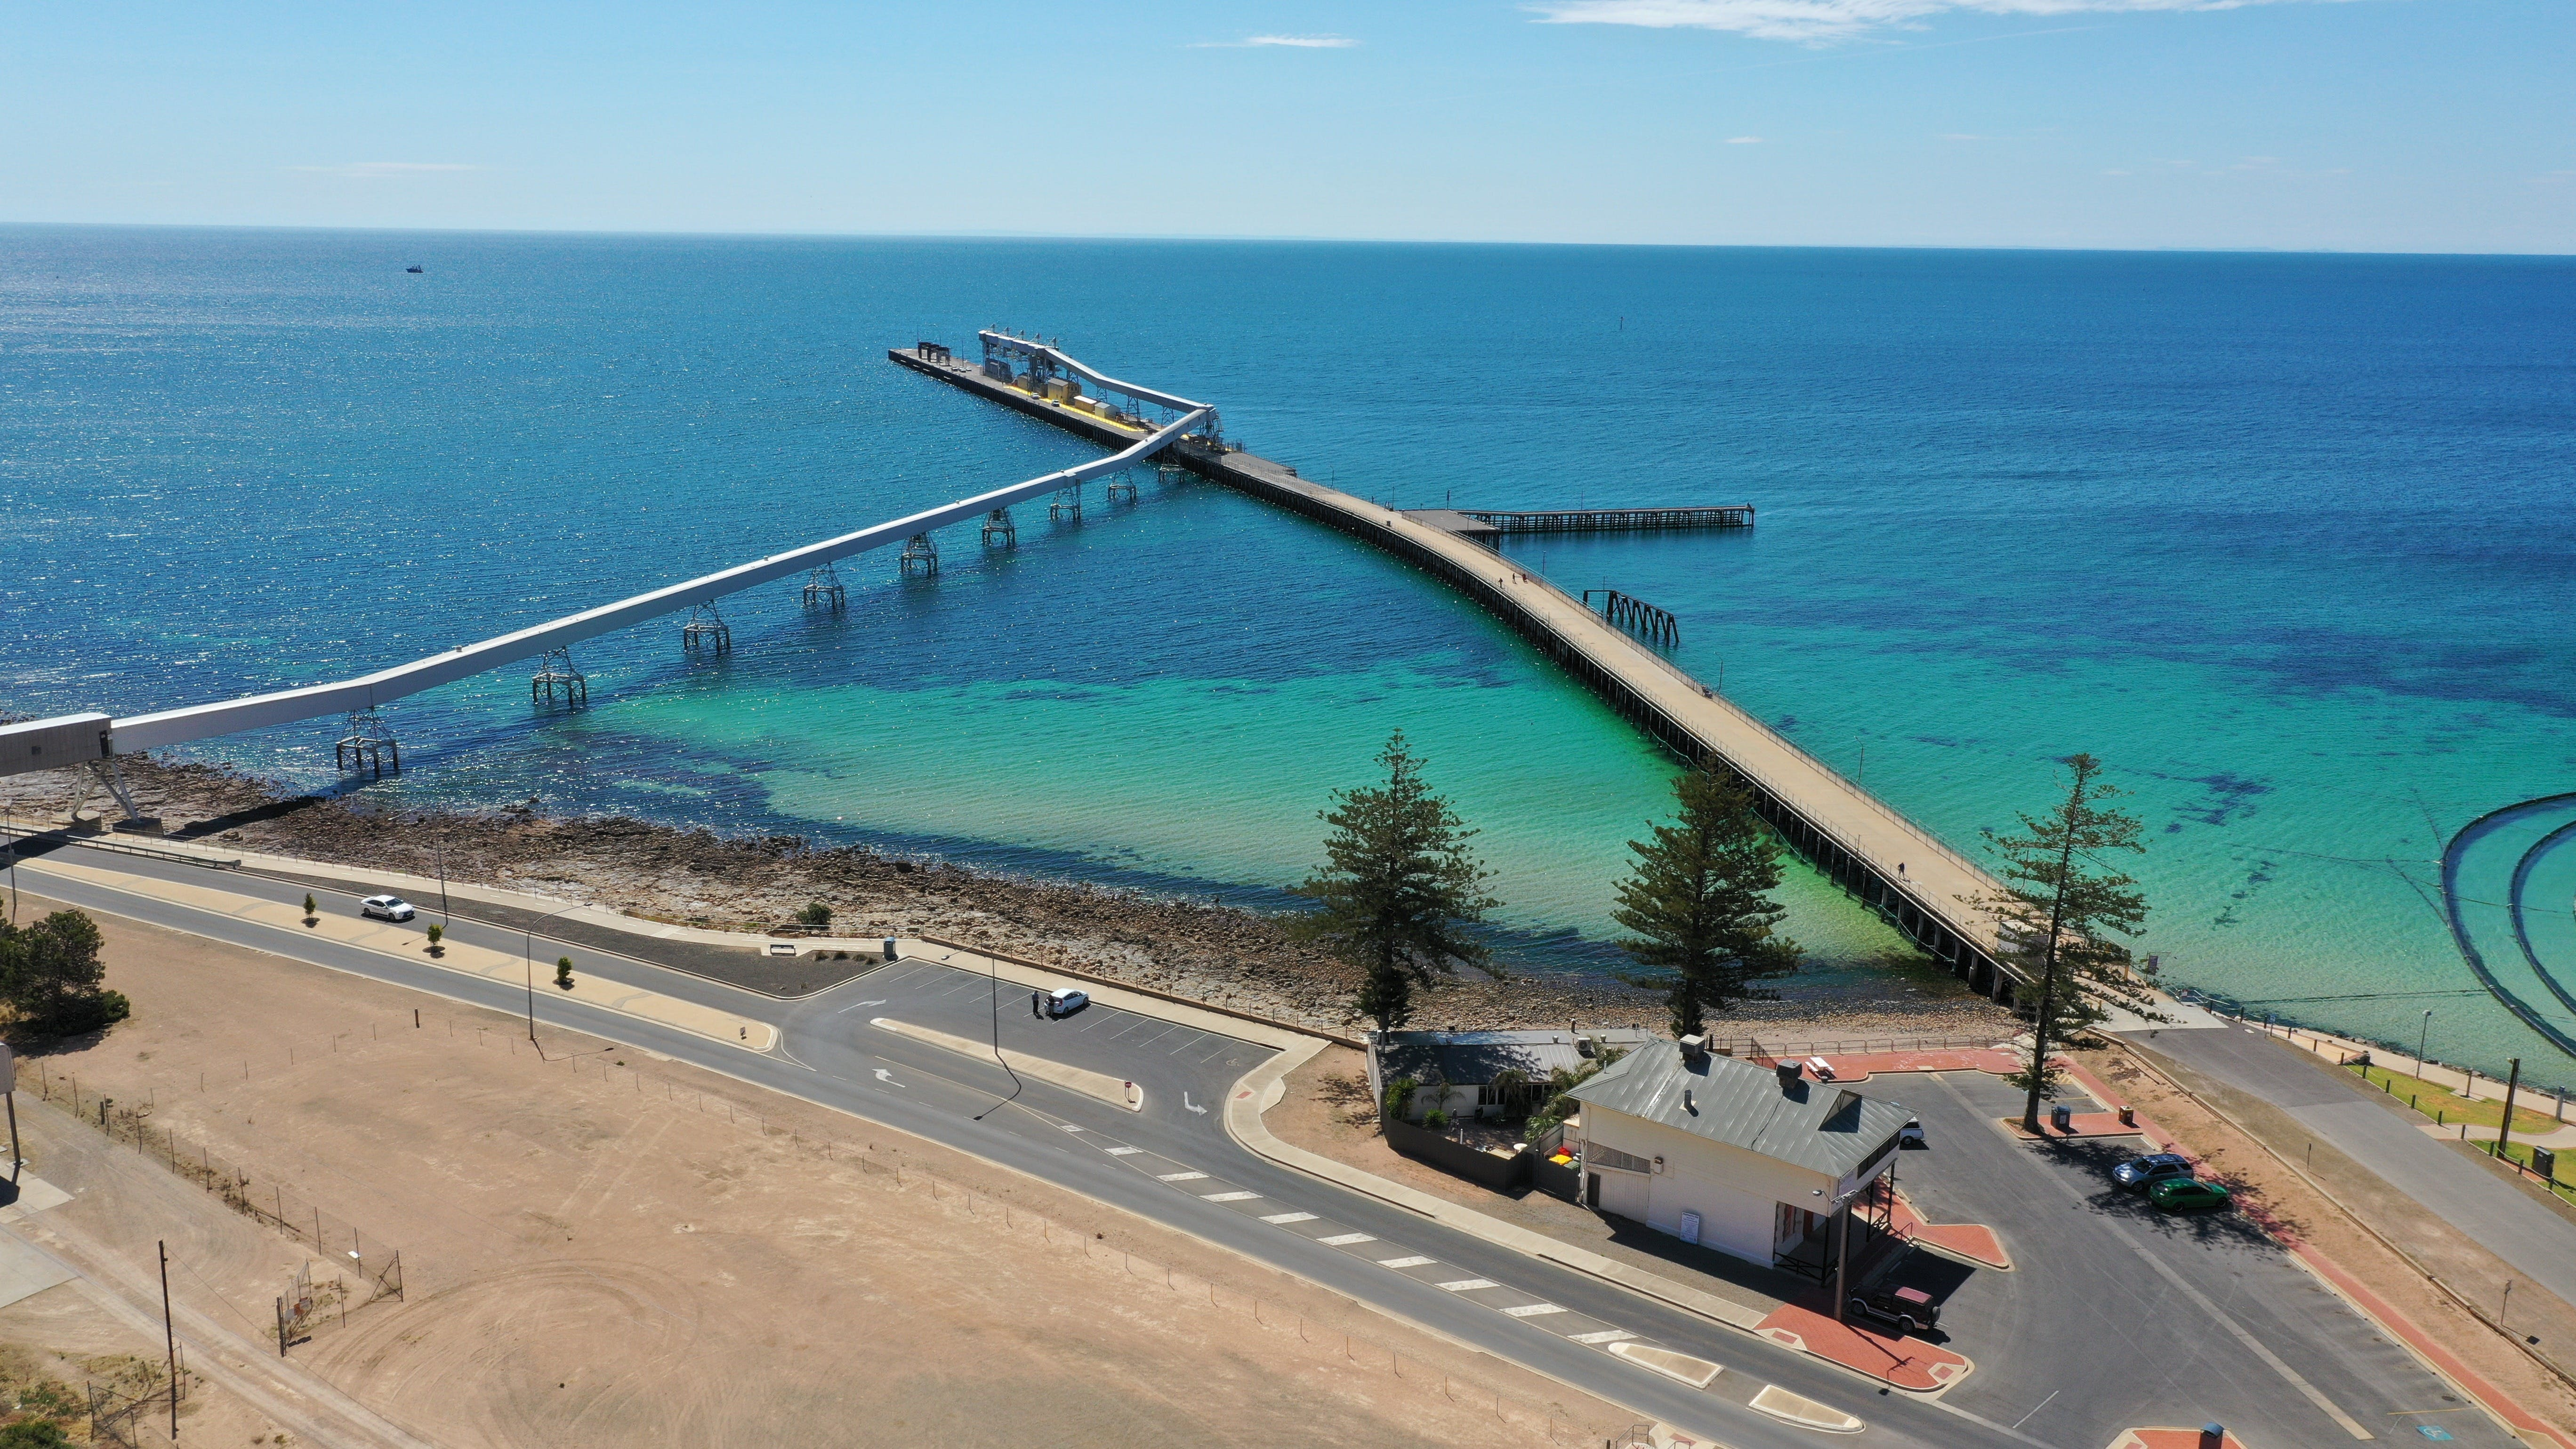 Wallaroo Jetty - Find Attractions